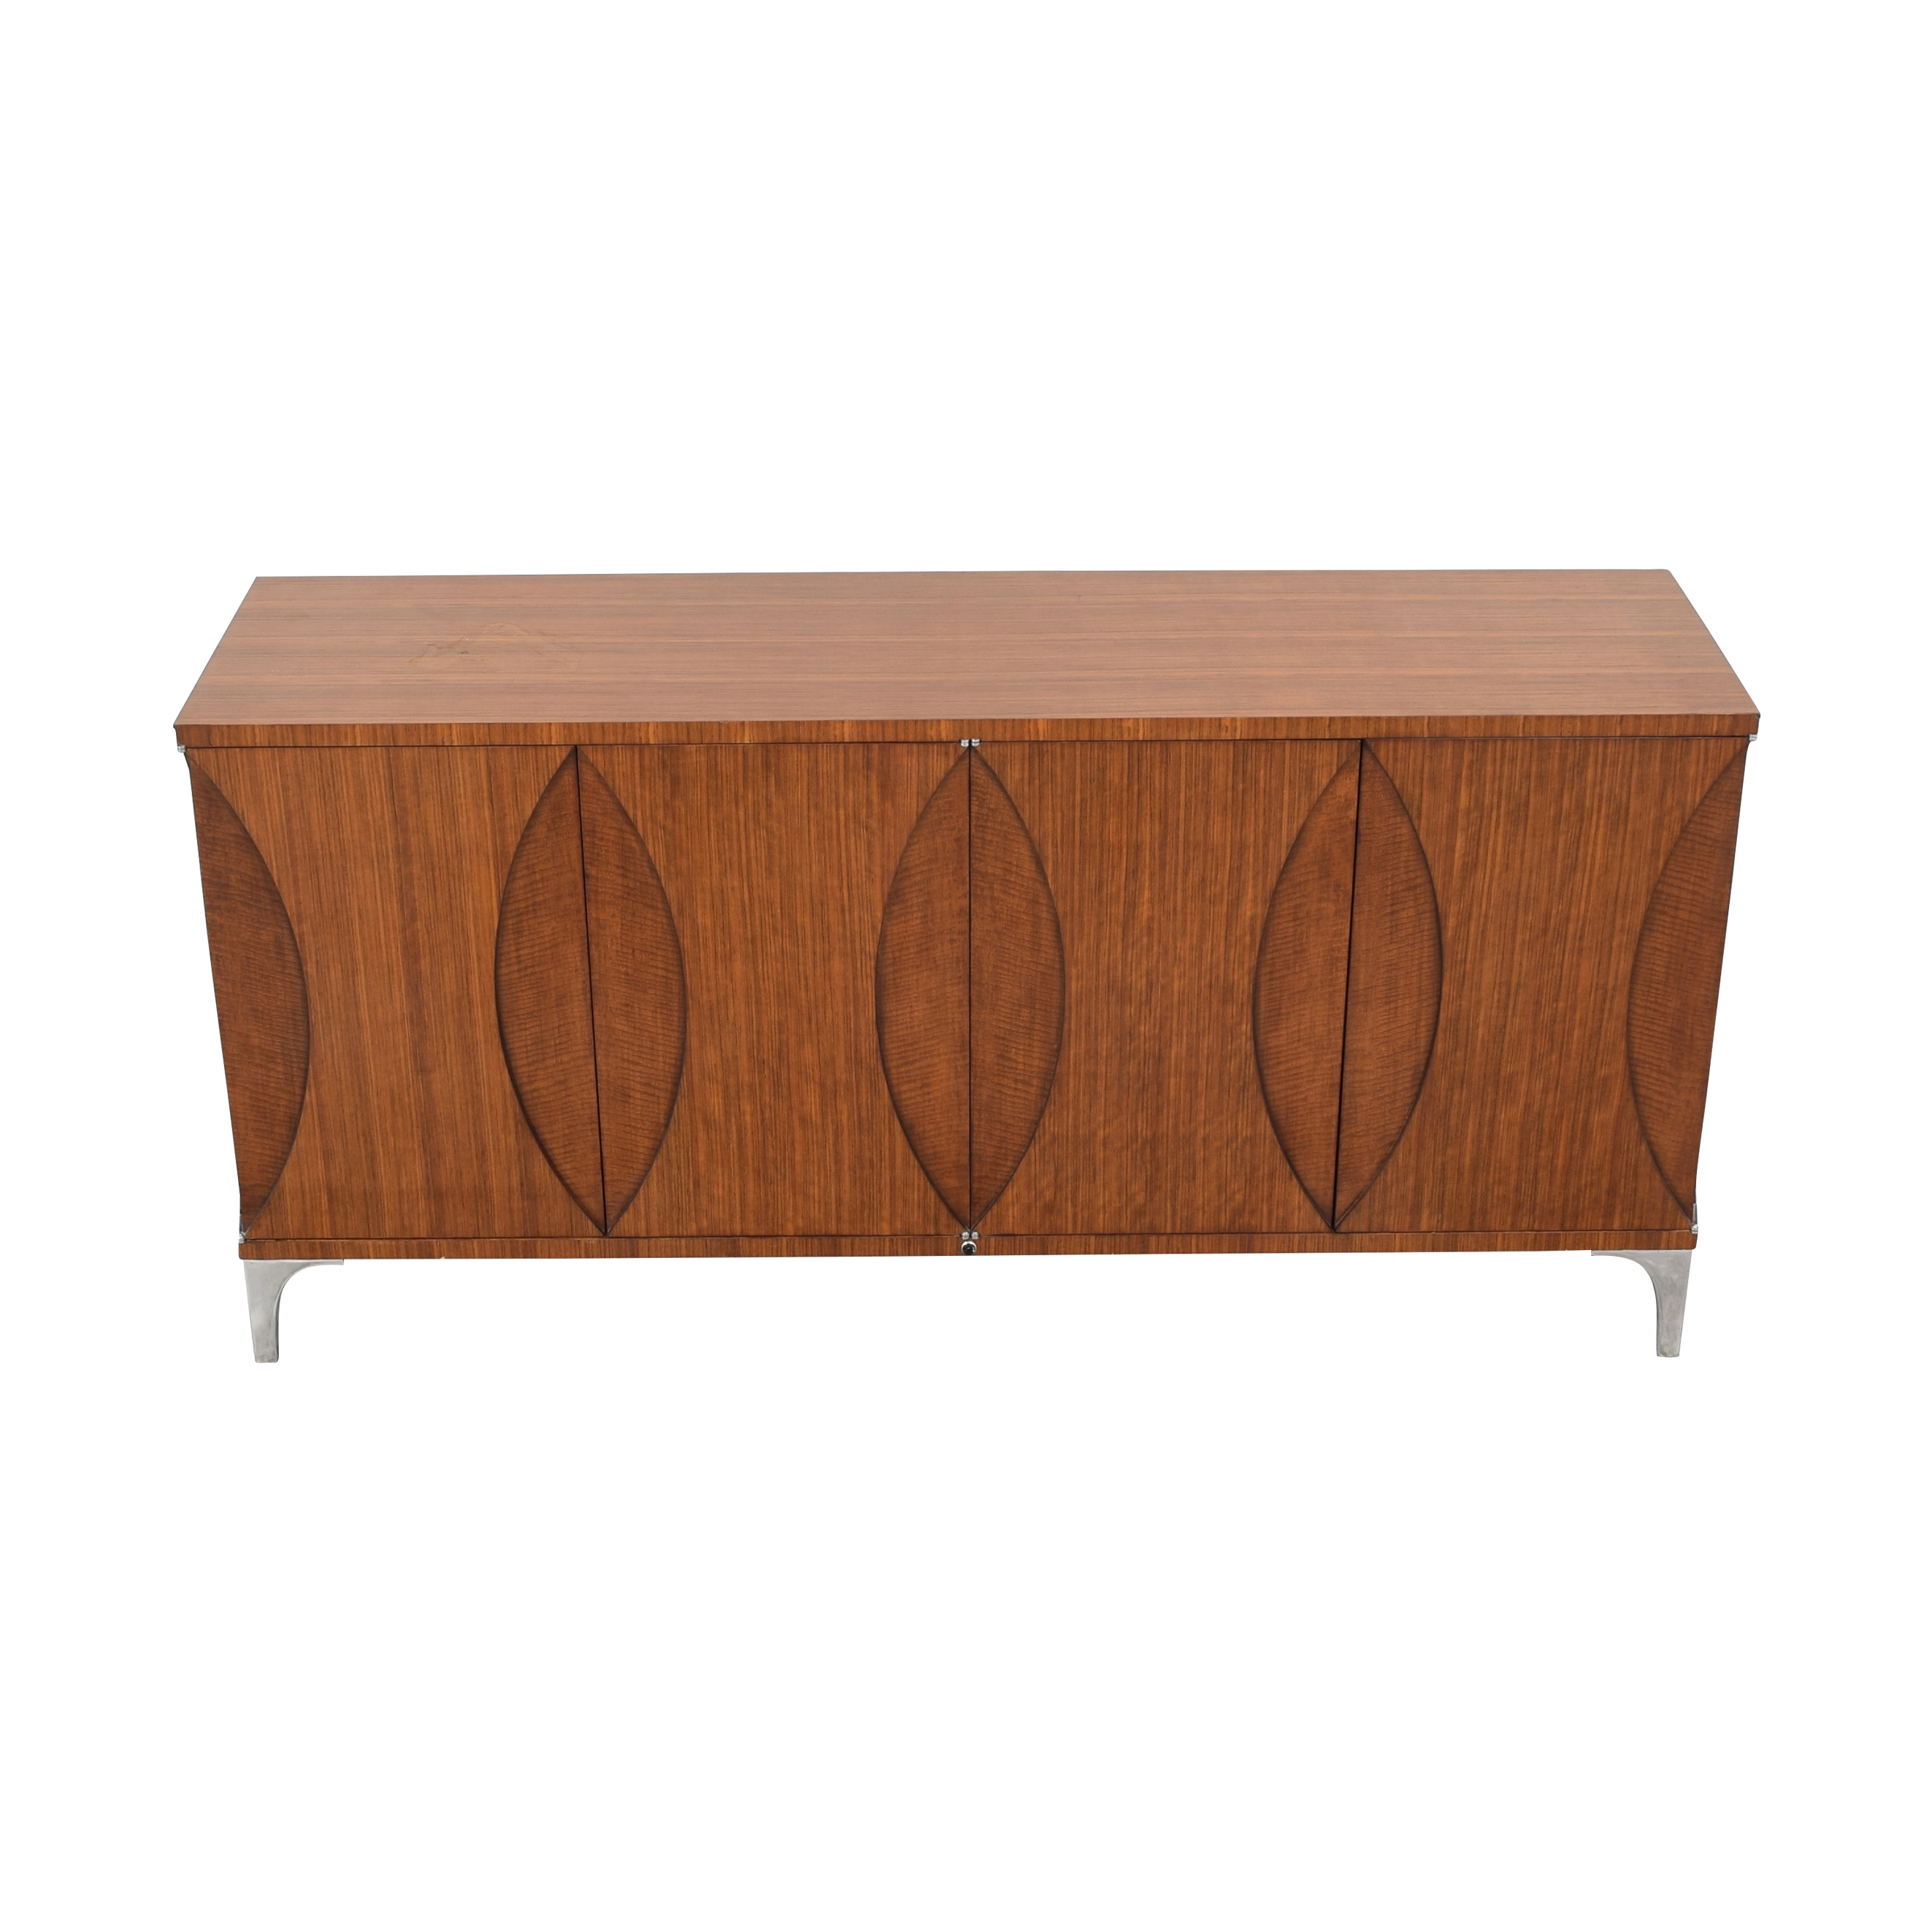 Theodore Alexander Theodore Alexander Keno Brothers Sideboard Buffet Cabinets & Sideboards